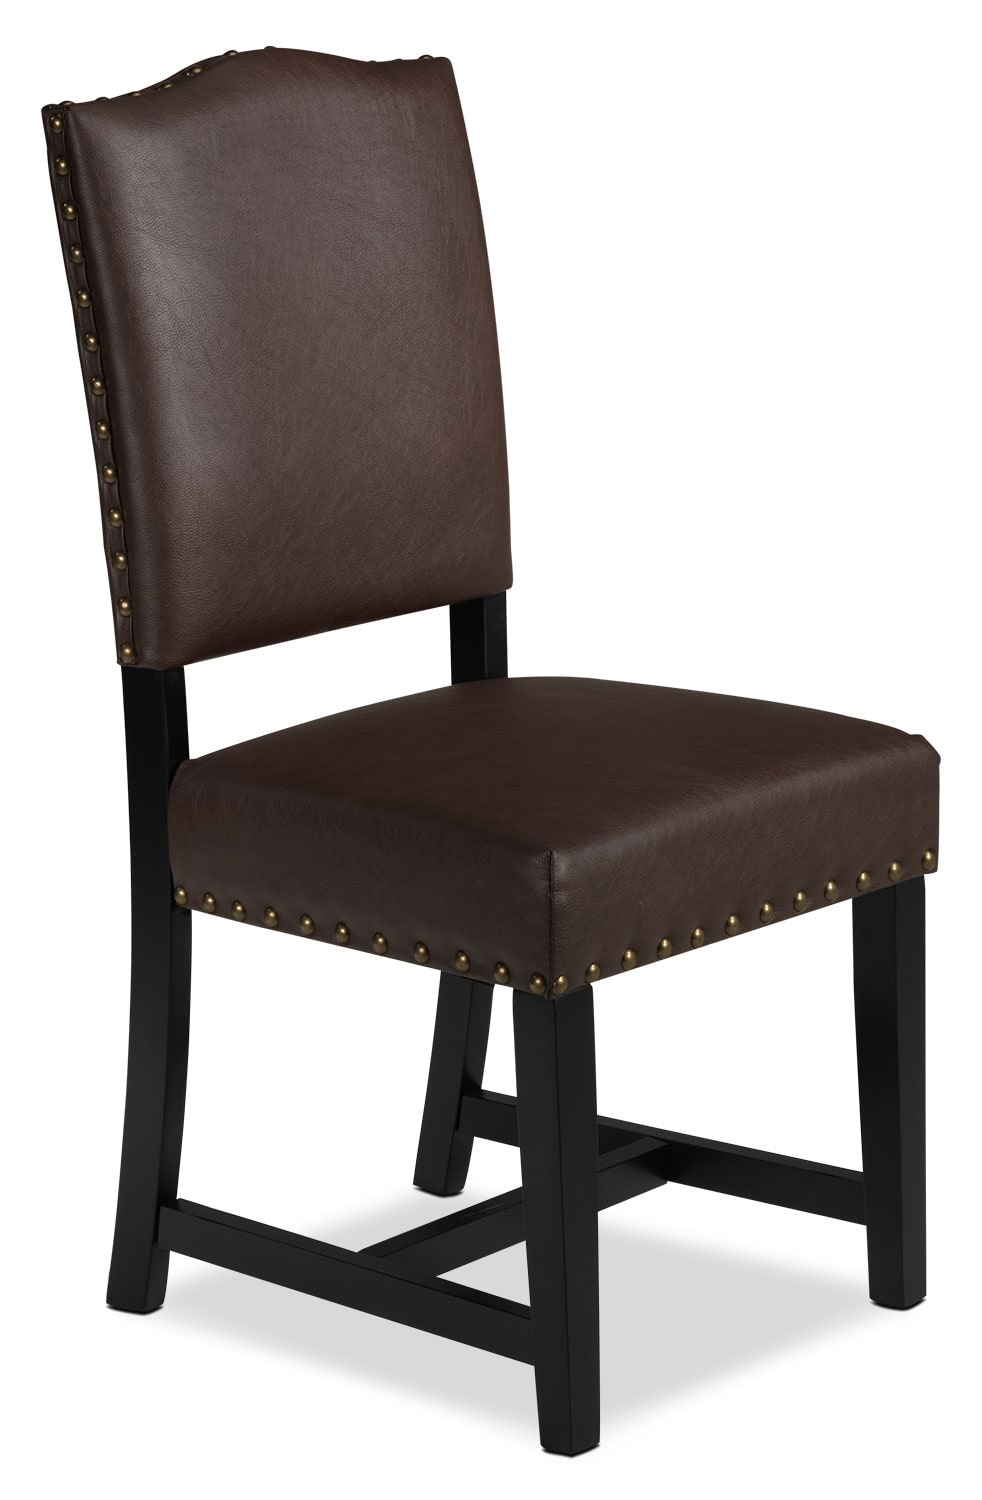 Casual Dining Room Furniture - Mabel Side Chair - Brown